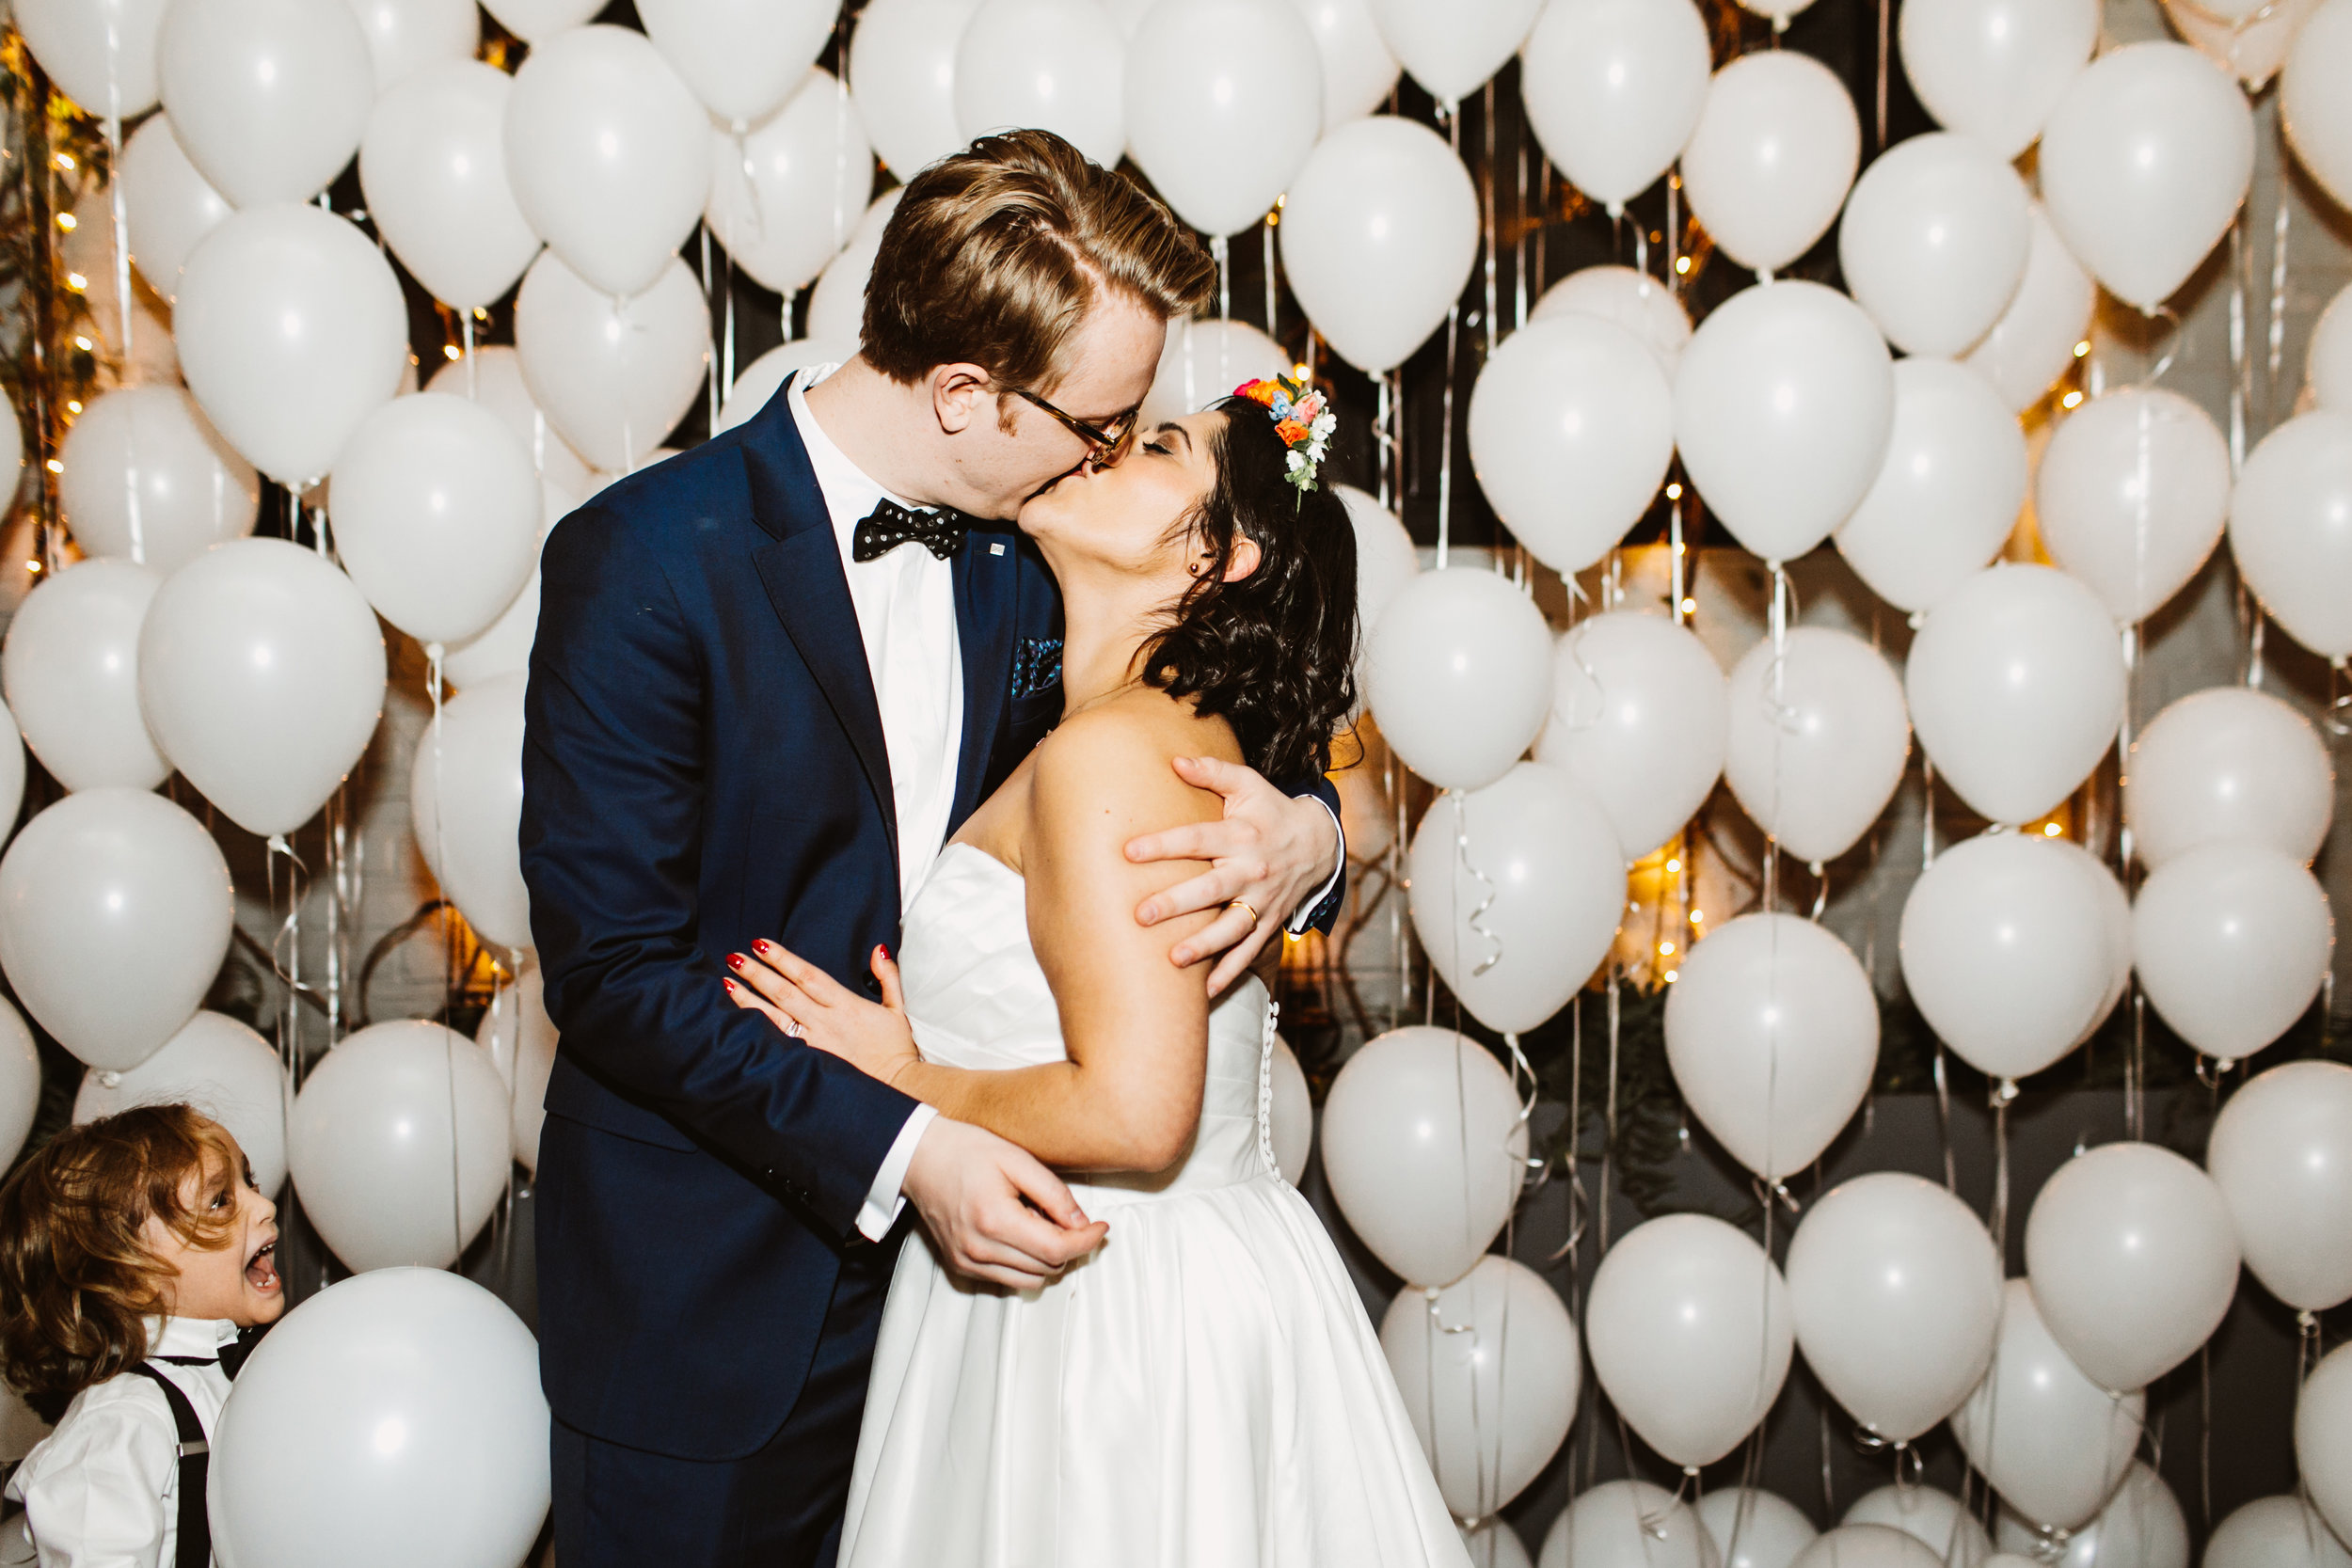 Tiffany and Graham's vibrant winter wedding at 501 union in brooklyn